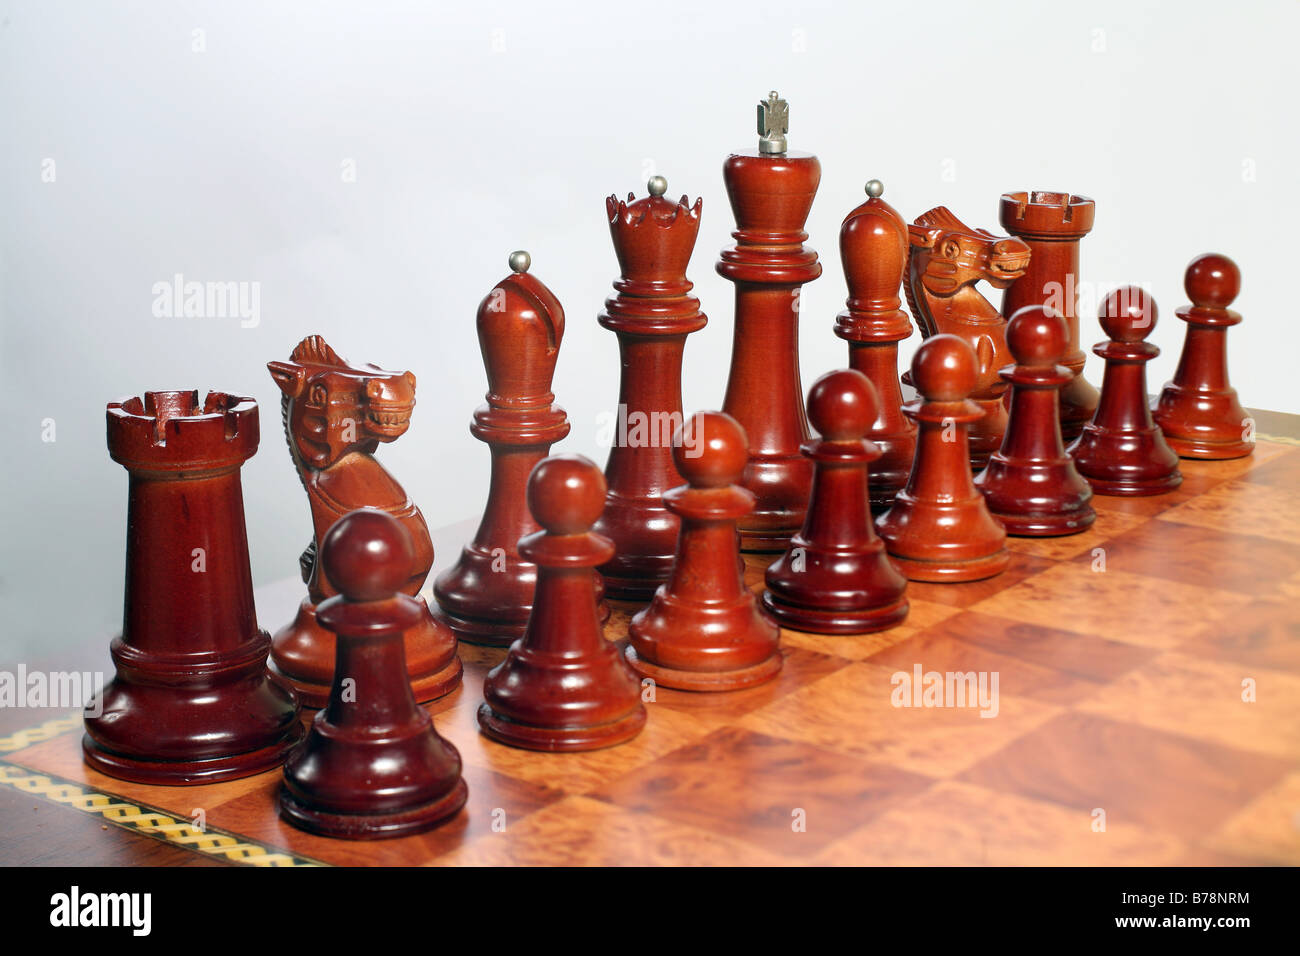 The black pieces set up on a chessboard. - Stock Image